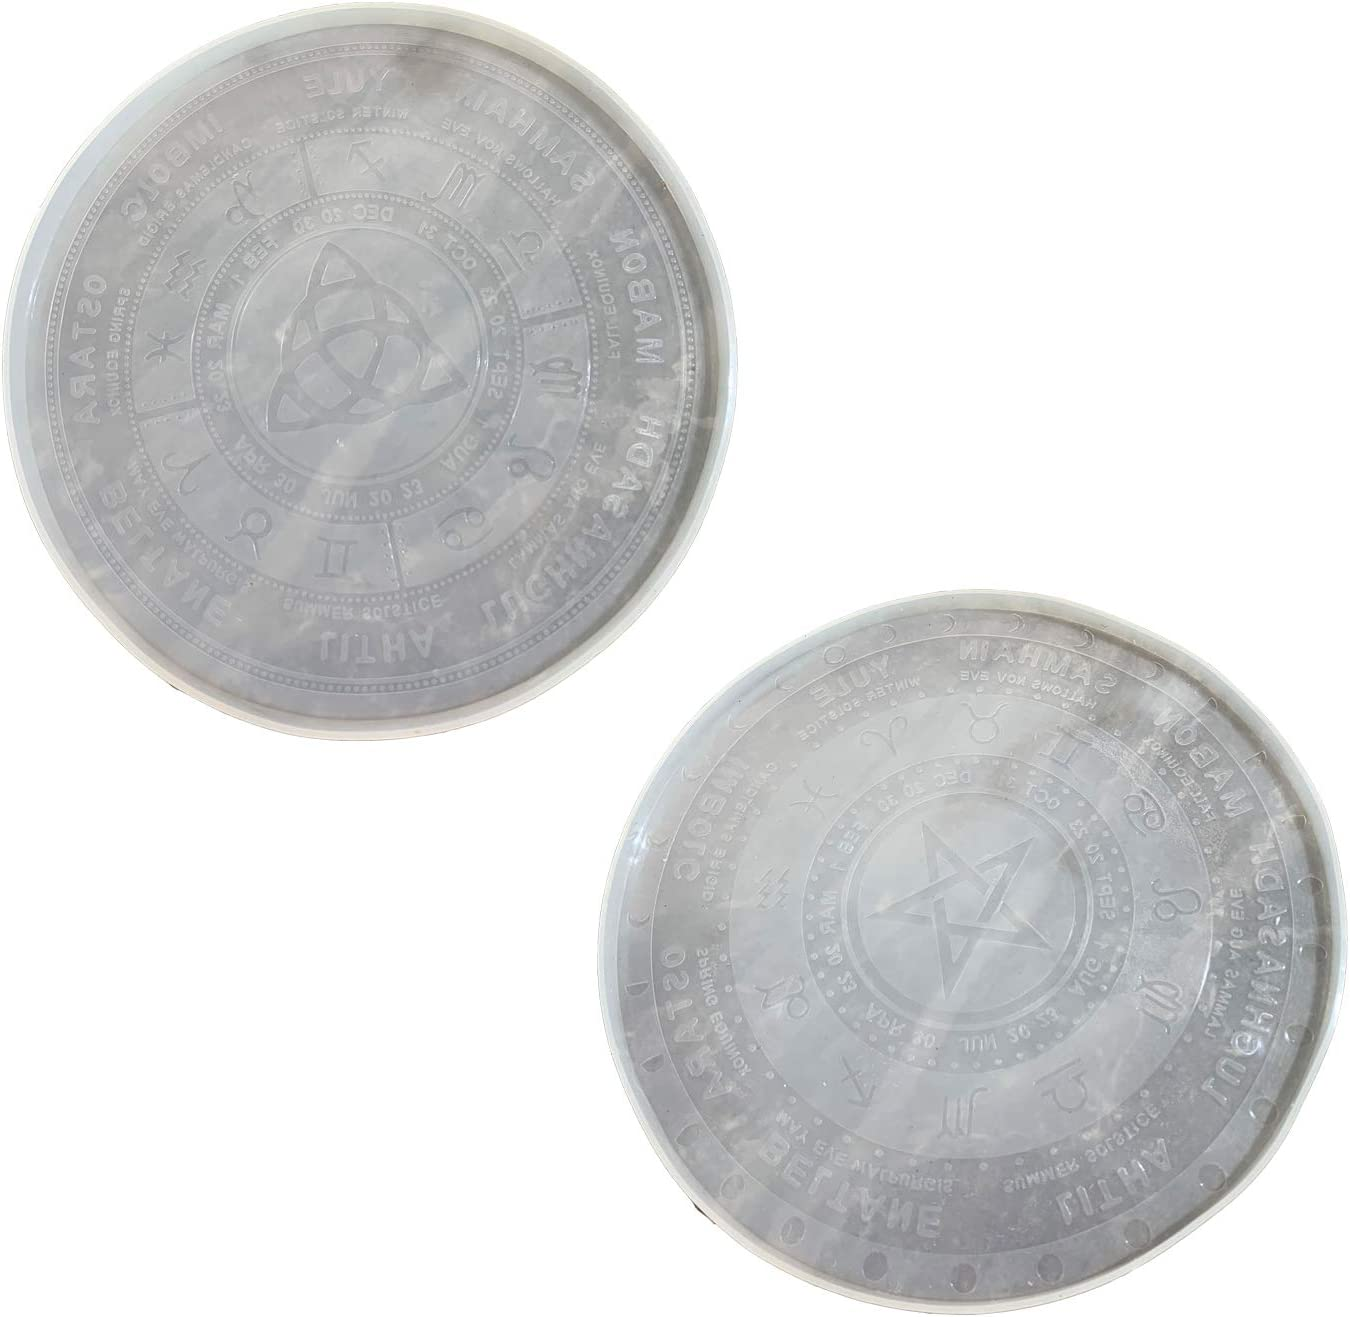 Lcoor 2Pcs Resin Mold Tarot Divination Max 59% OFF Divin Mat for Popular shop is the lowest price challenge Epoxy Molds